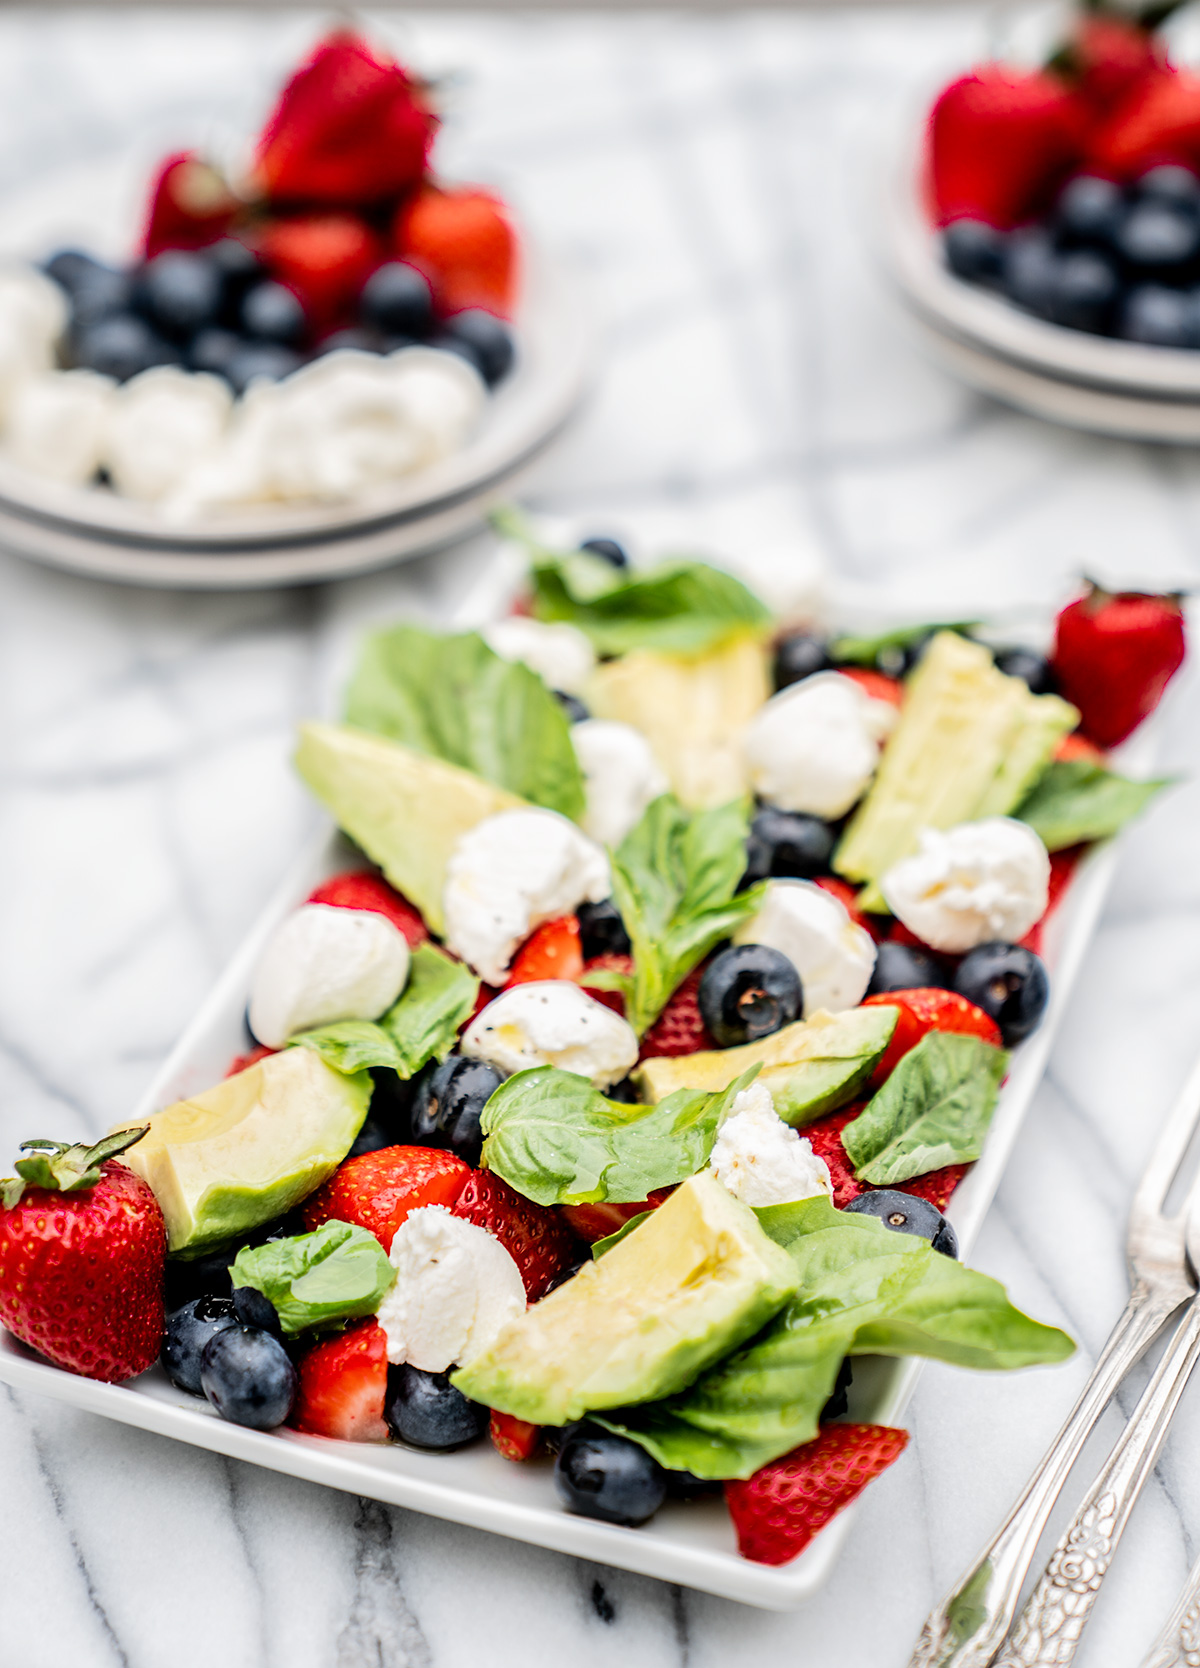 Avocado-and-Blueberry-and-Strawberry-Caprese-Salad